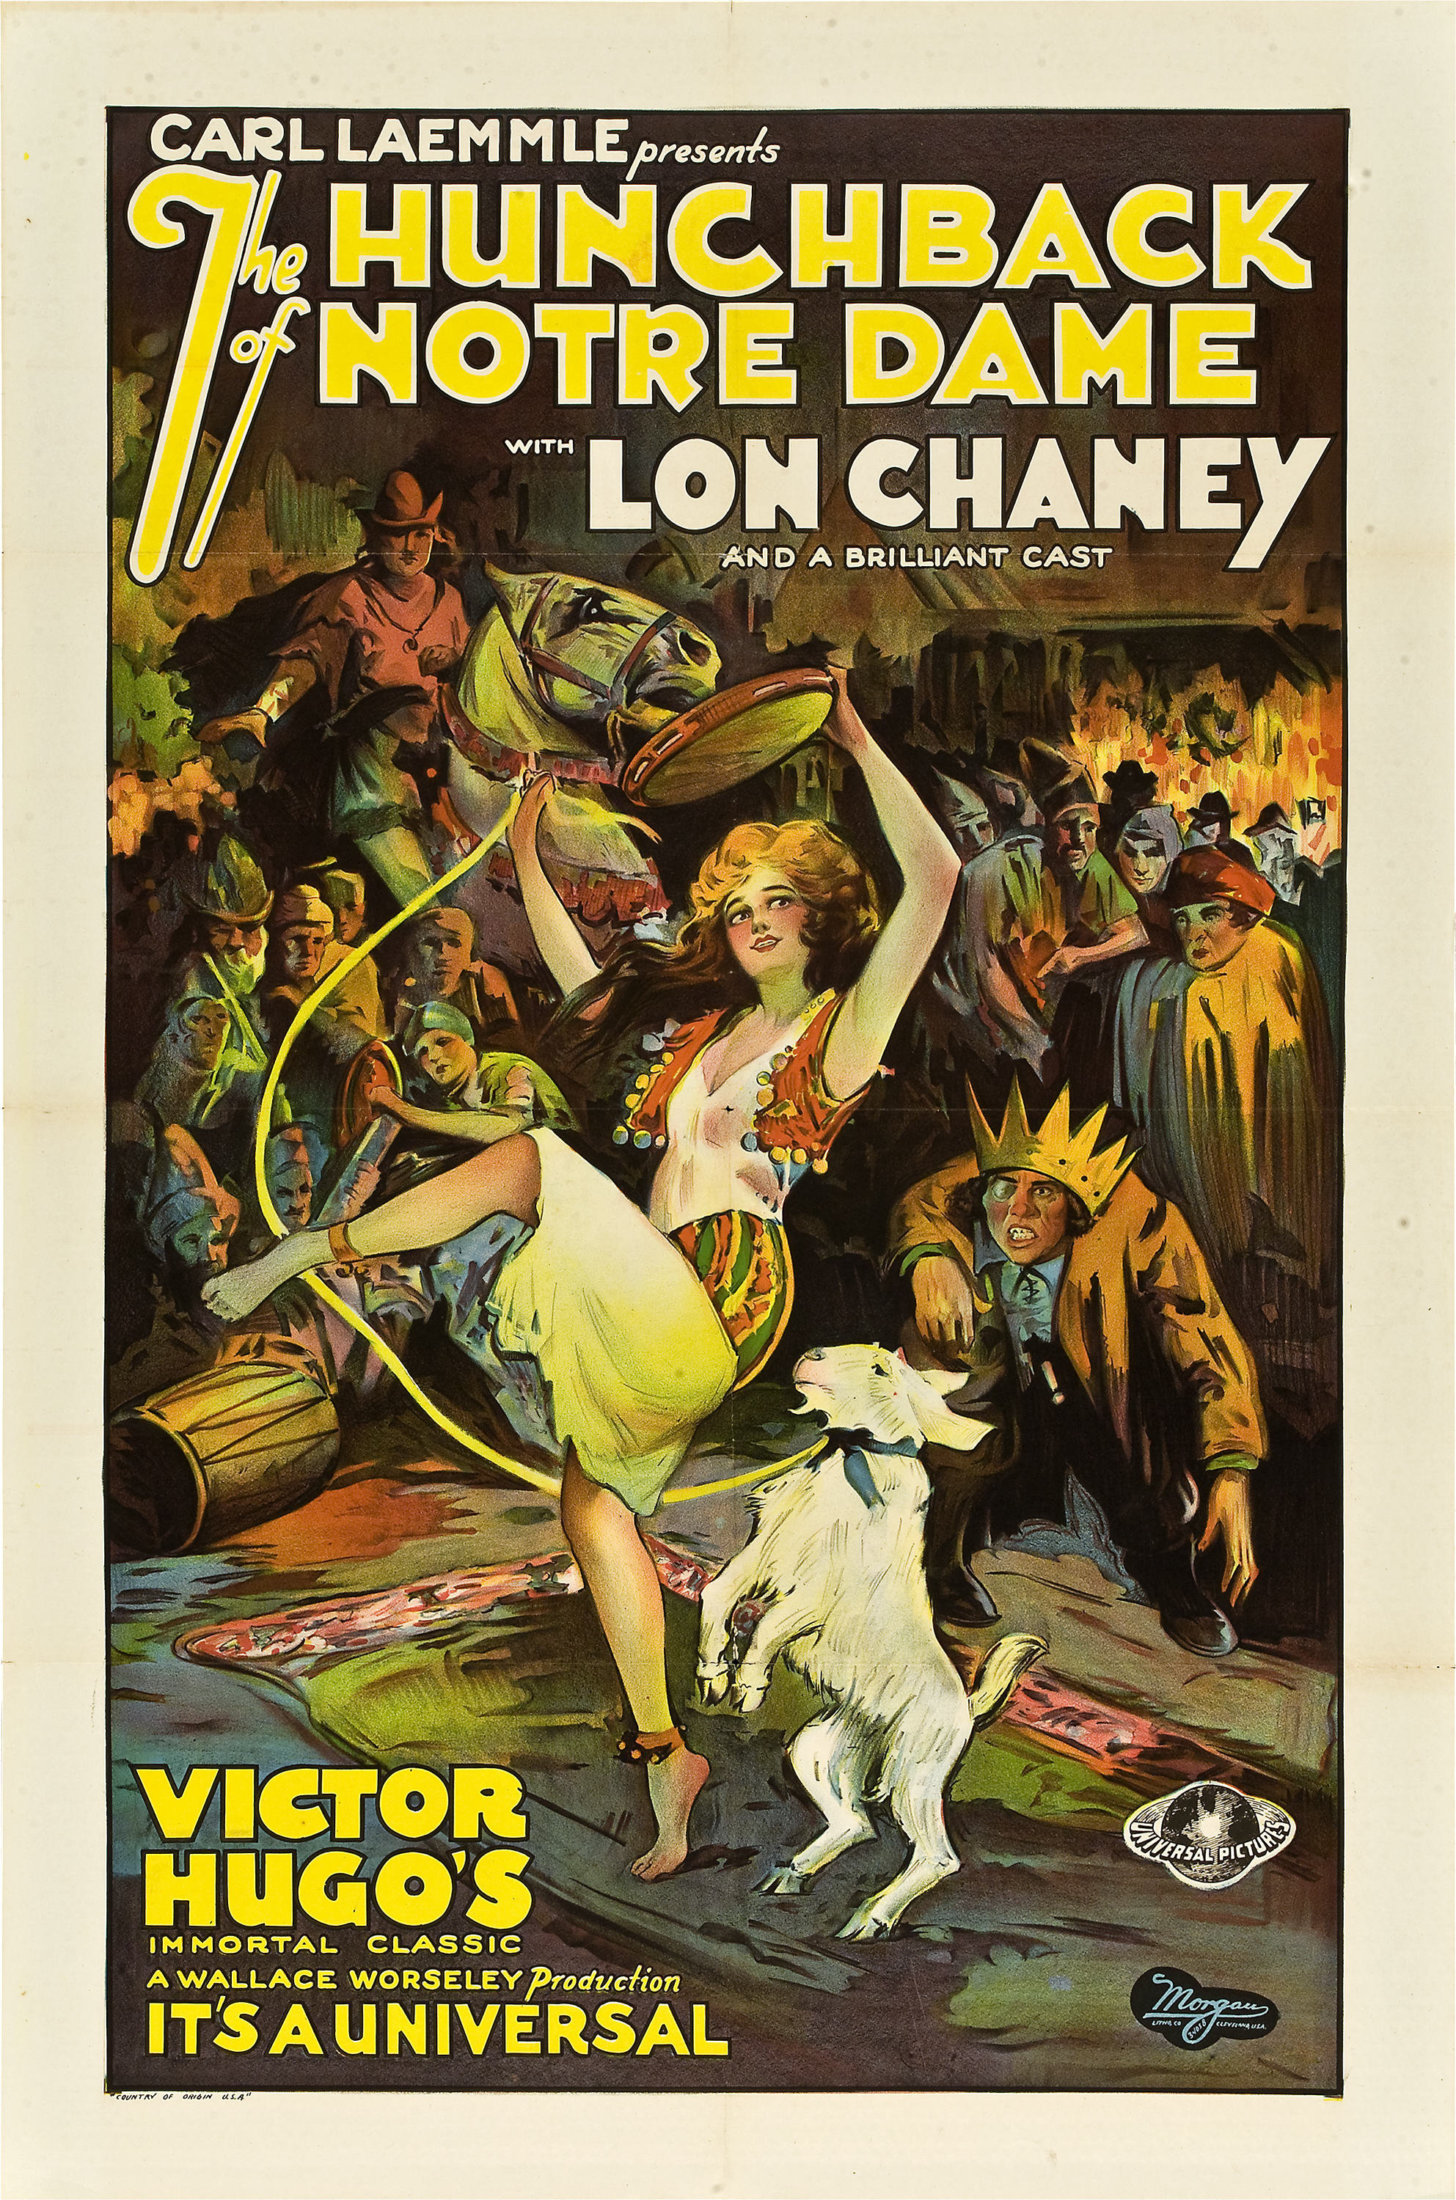 The Hunchback of Notre Dame - poster 1923